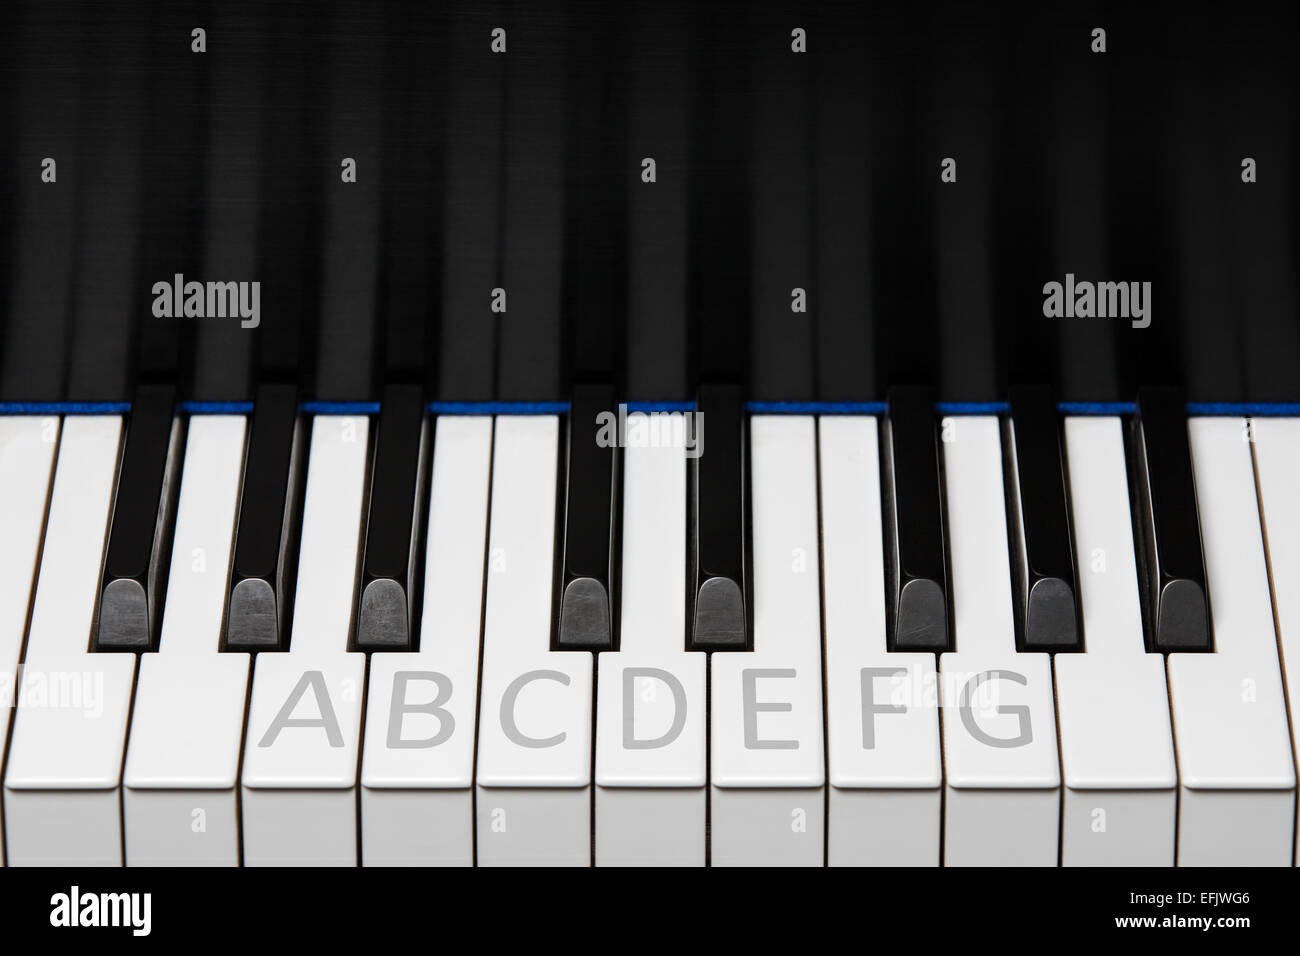 Section of piano keyboard showing one octave plus two extra keys on each end.  Notes labeled as with a student. - Stock Image